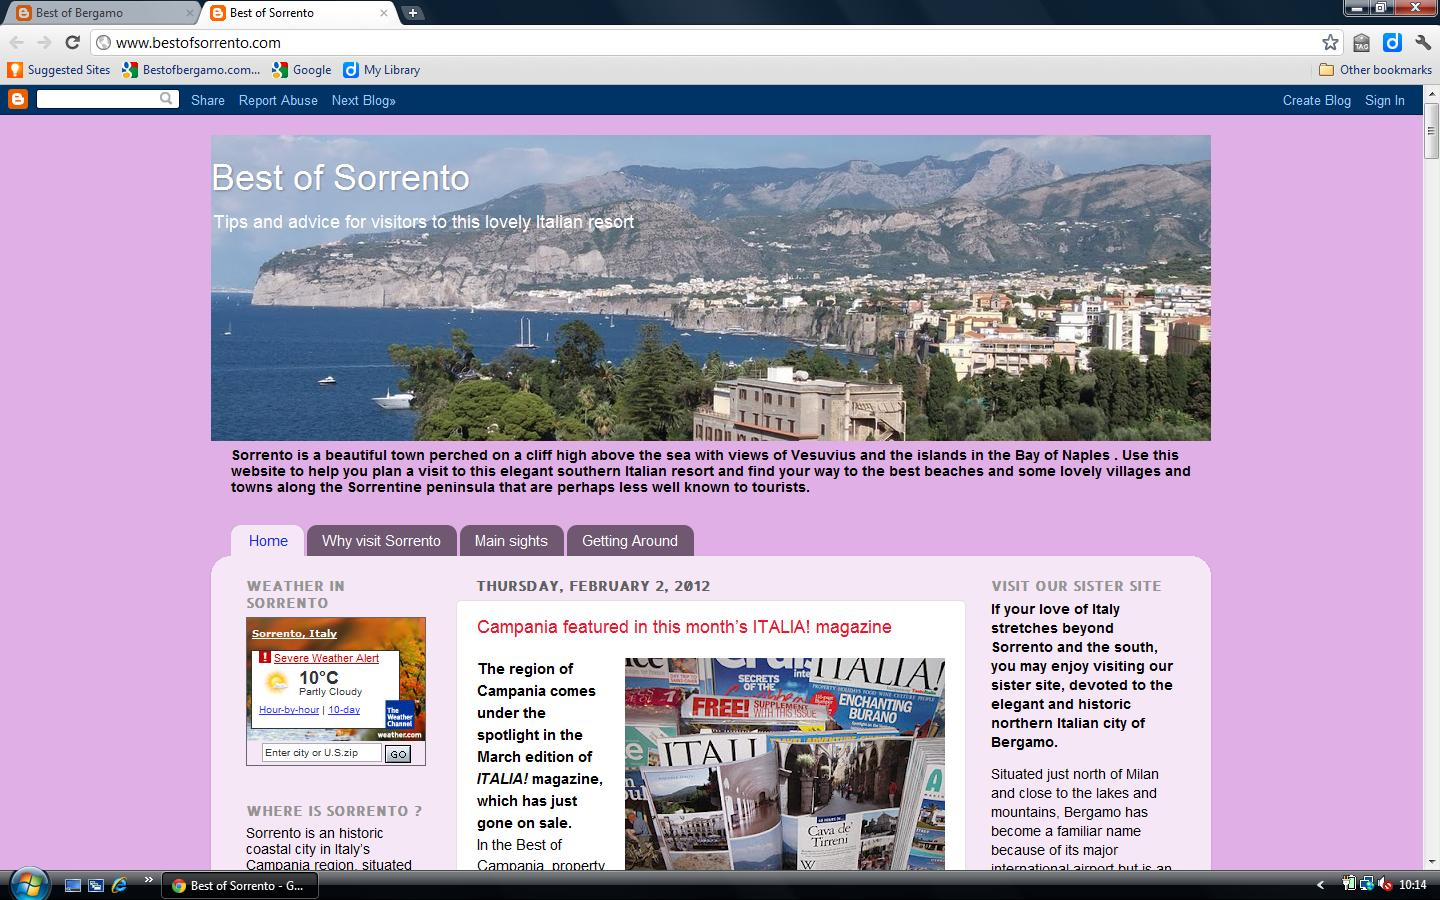 Best of Sorrento screenshot